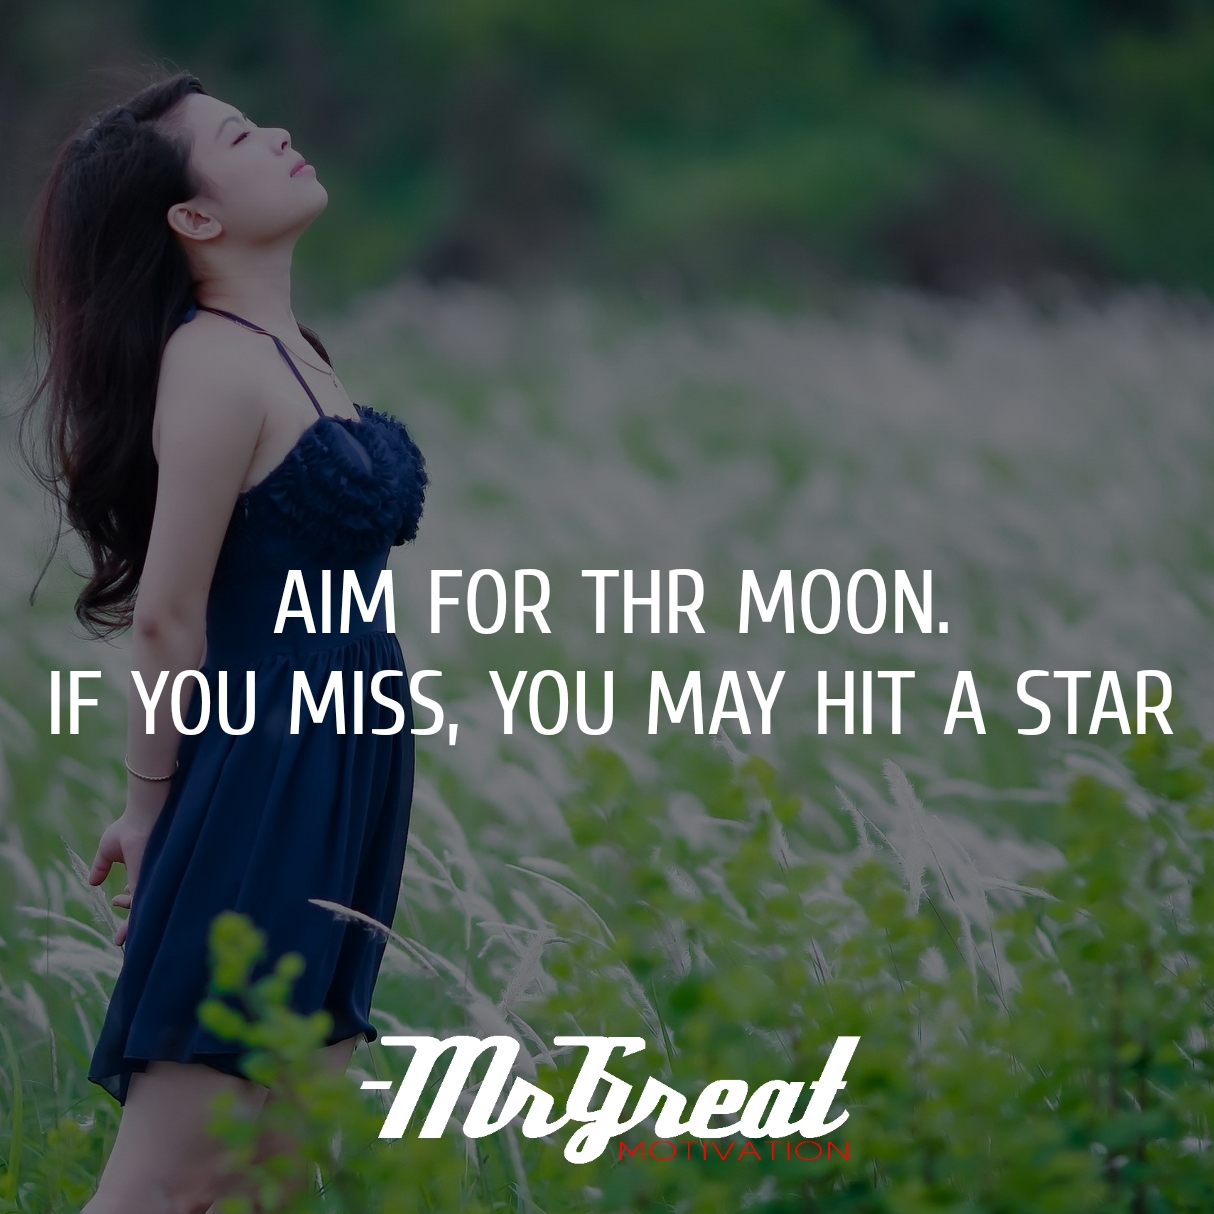 AIM FOR THE MOON, IF YOU MISS YOU MAY HIT A STAR